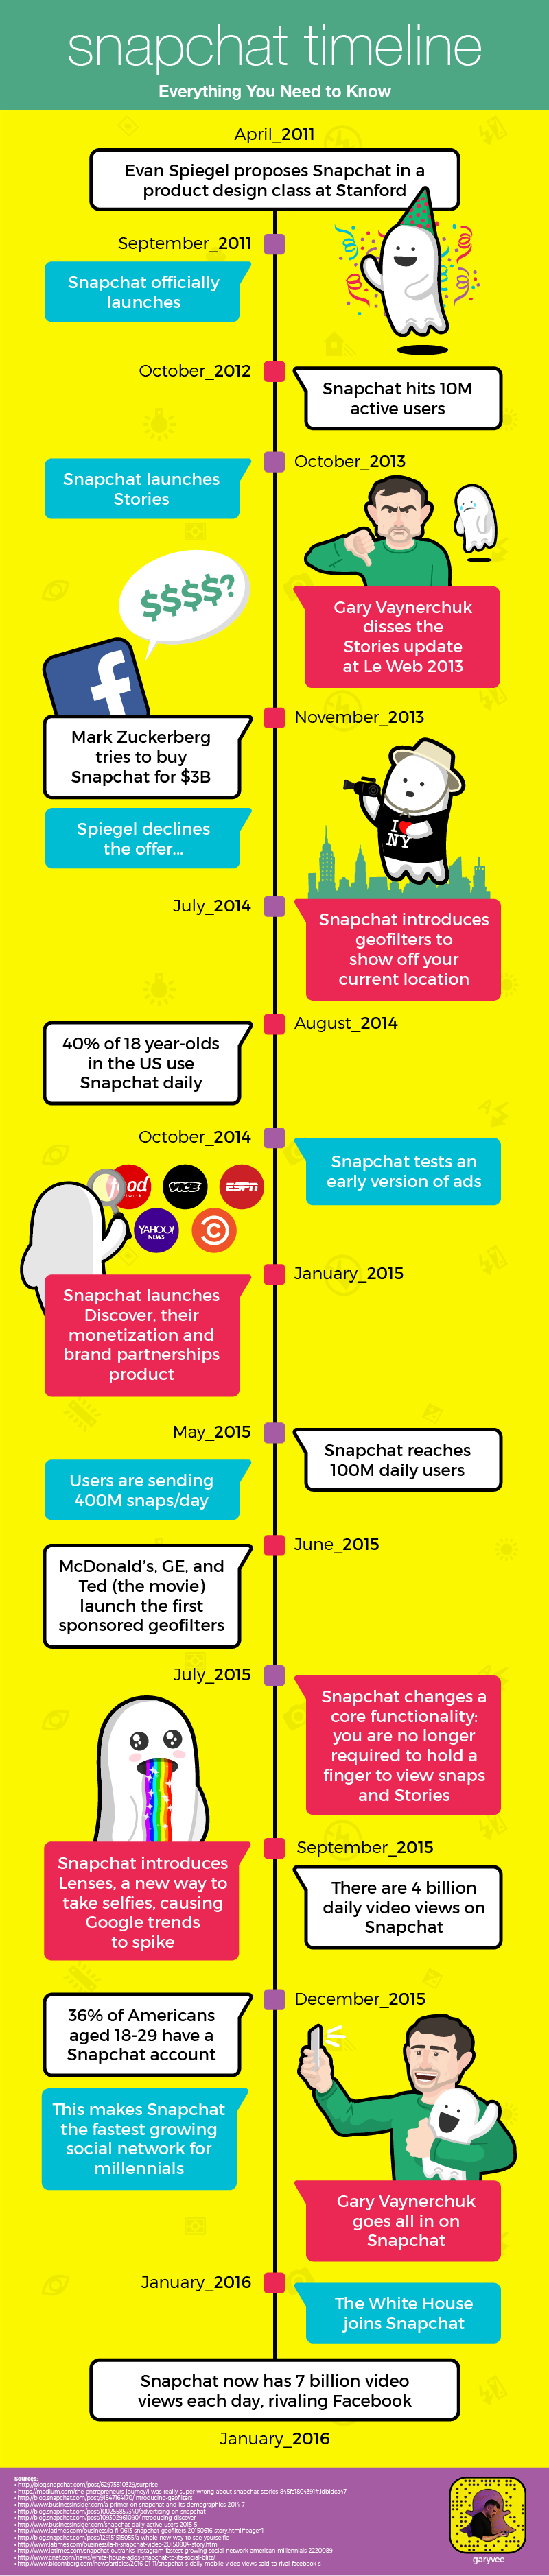 The History Of Snapchat In One Timeline